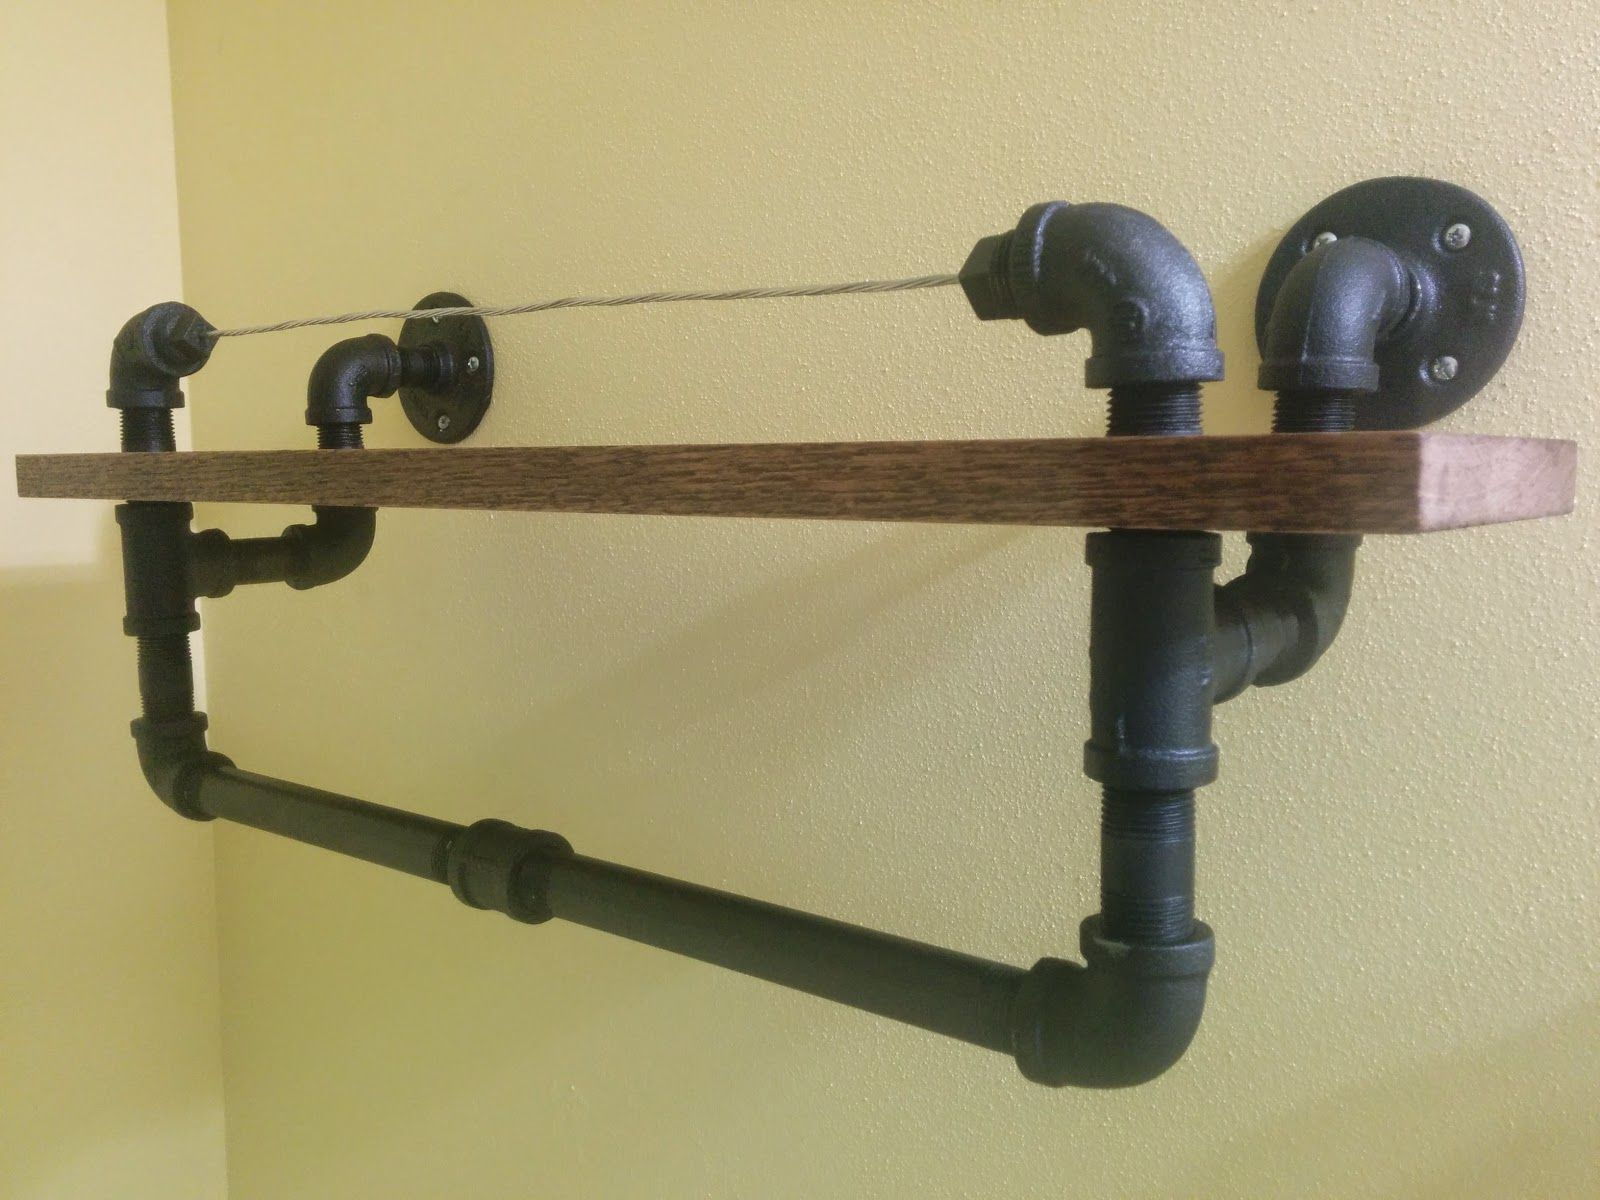 DIY Industrial Towel Rack With Oak Shelf